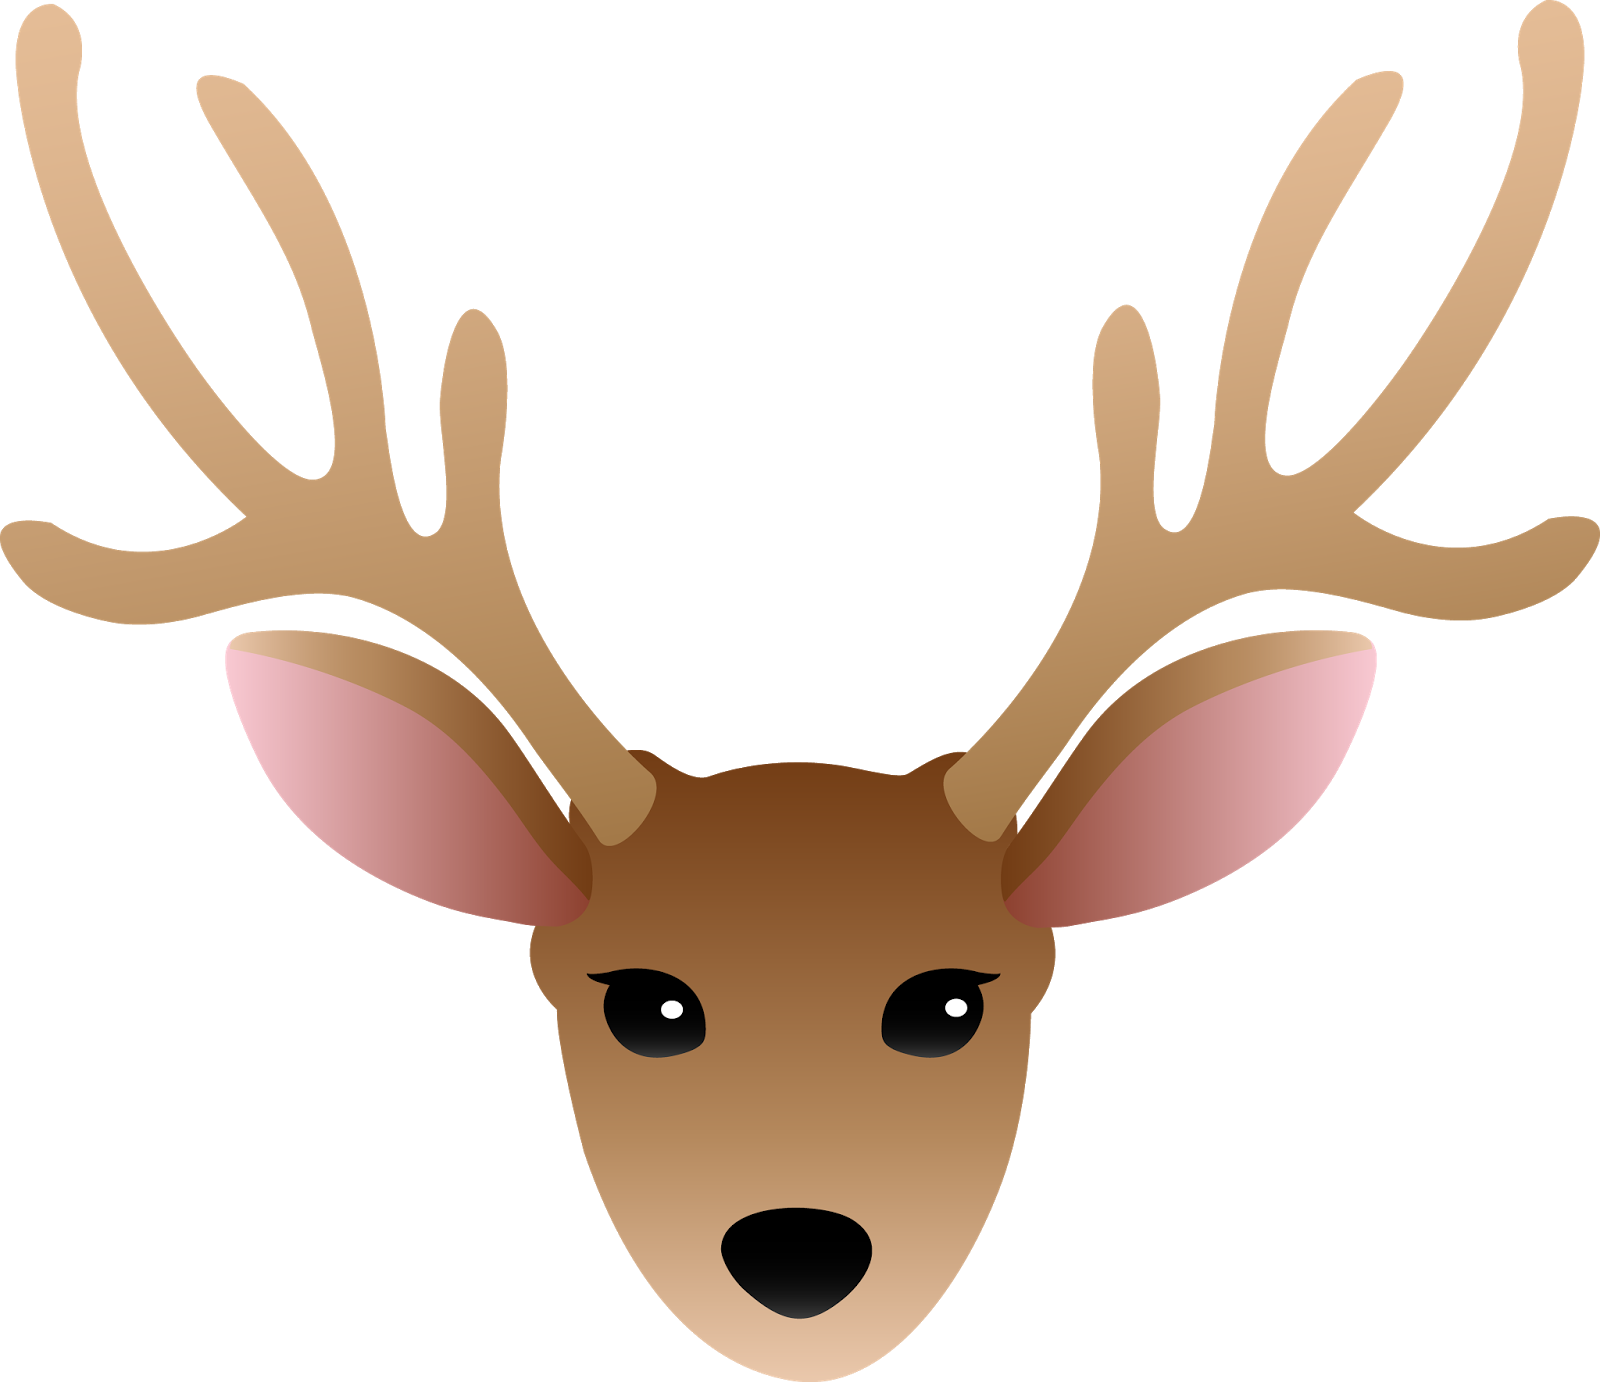 Easy at getdrawings com. Deer clipart mother's day